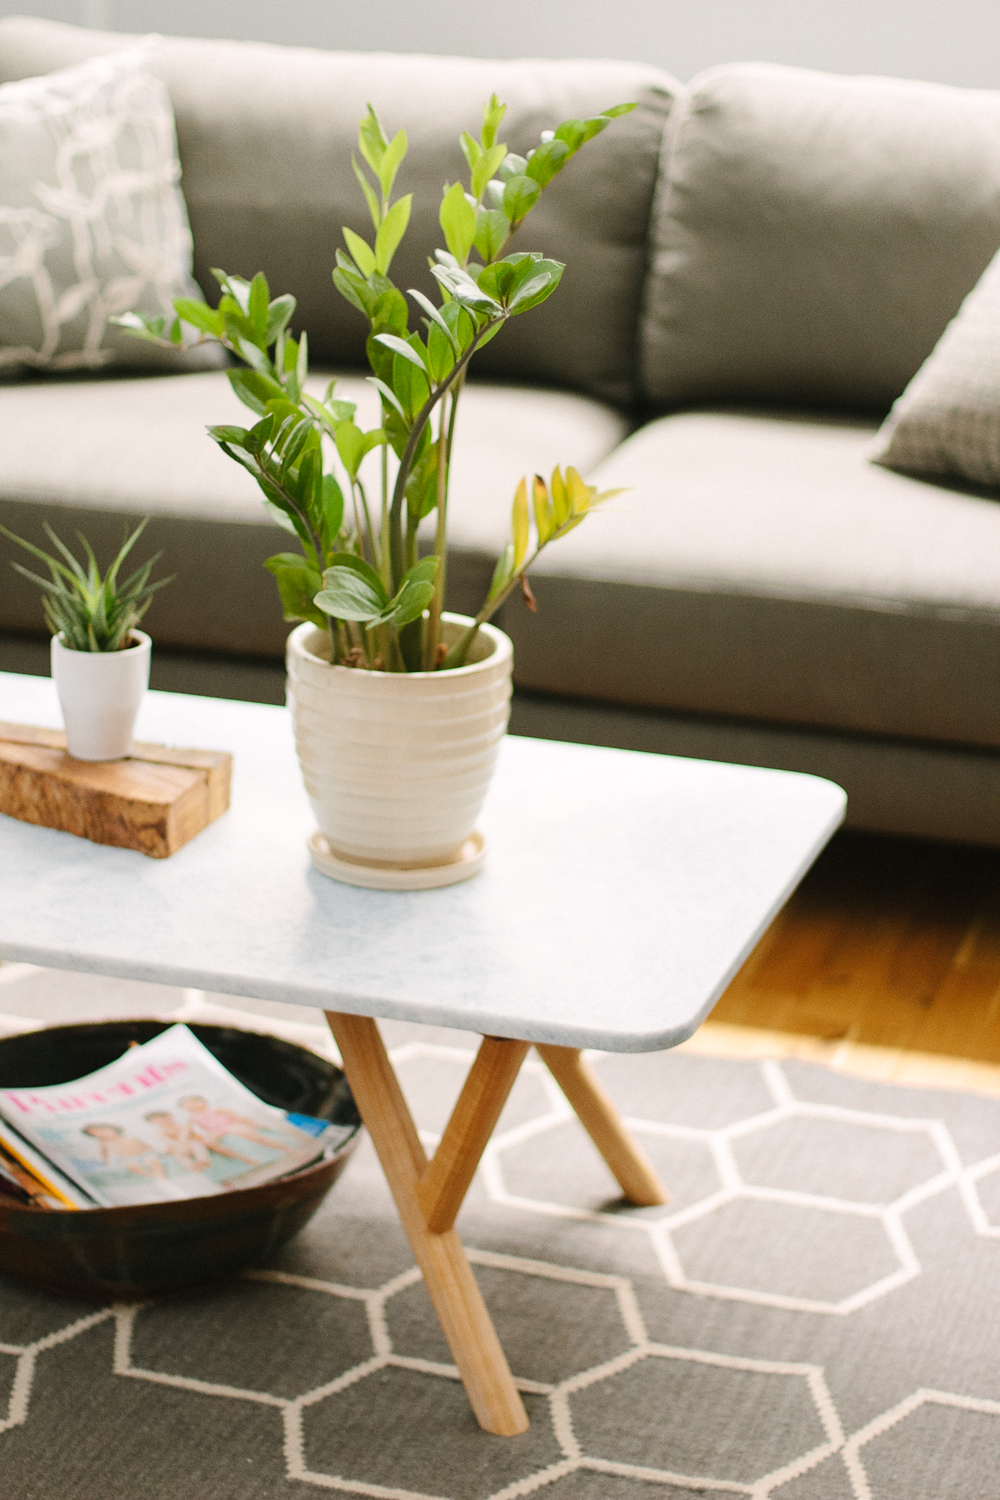 Zz Plant Care How To Grow Maintain Zz Plants Apartment Therapy